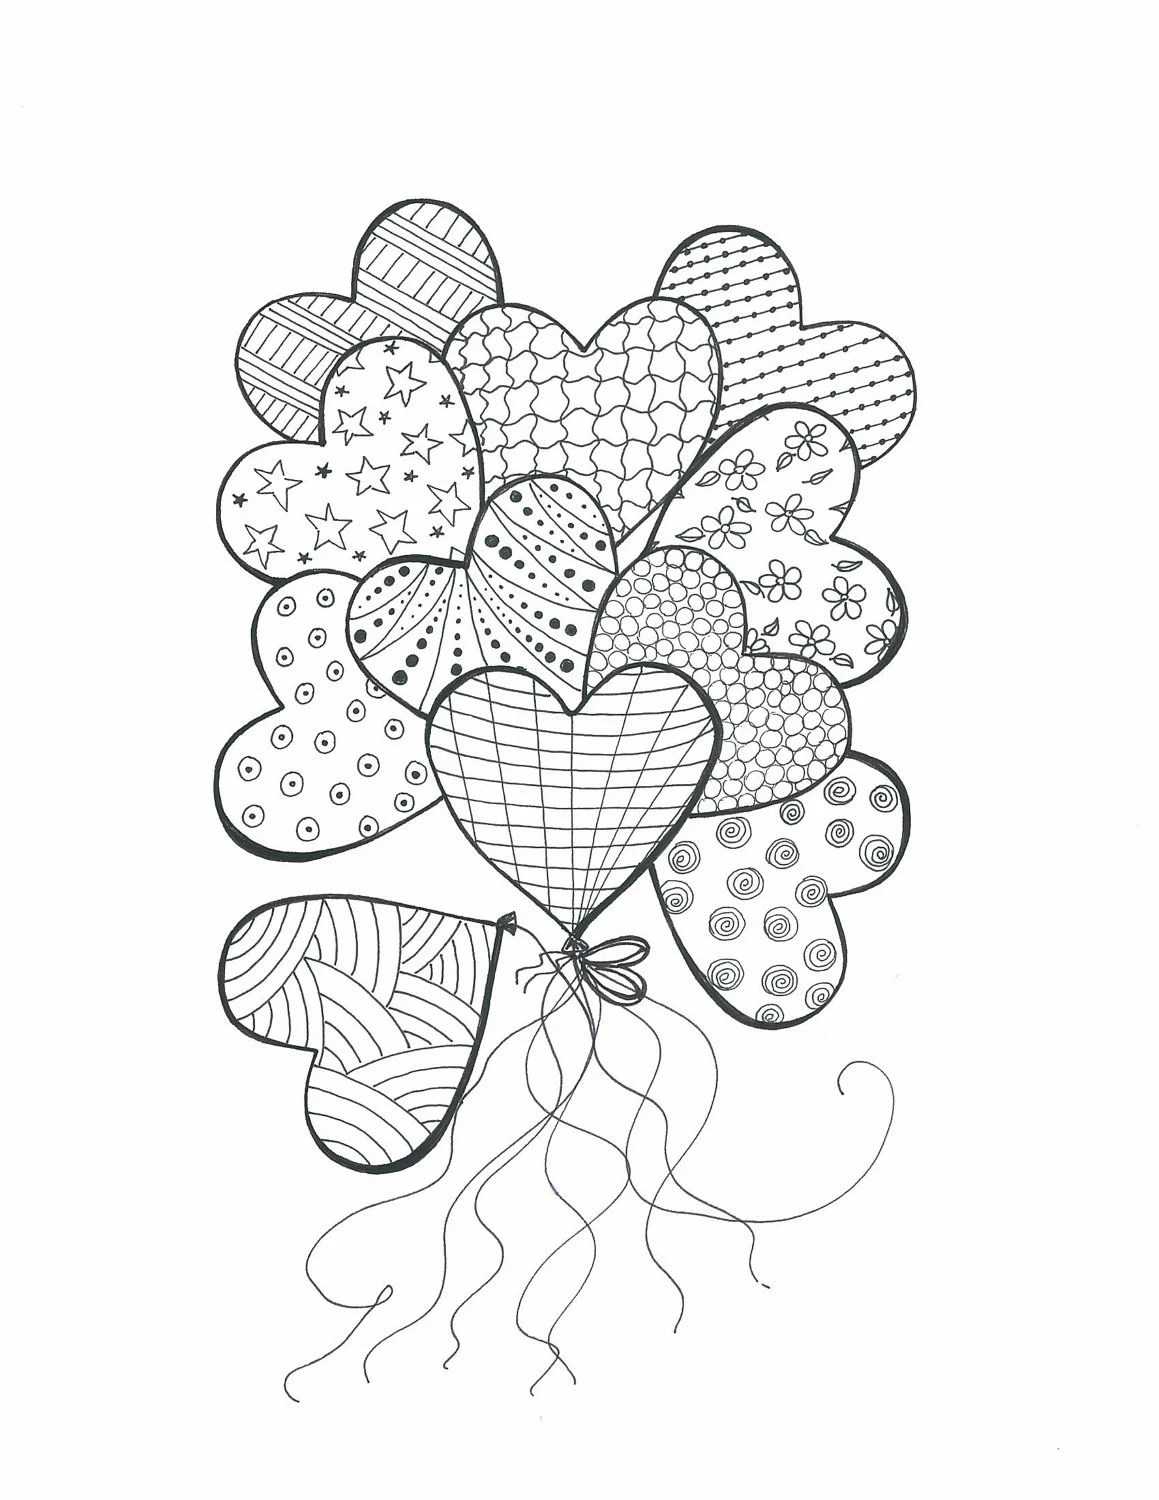 Items similar to Drawing for Coloring-Bouquet of Heart